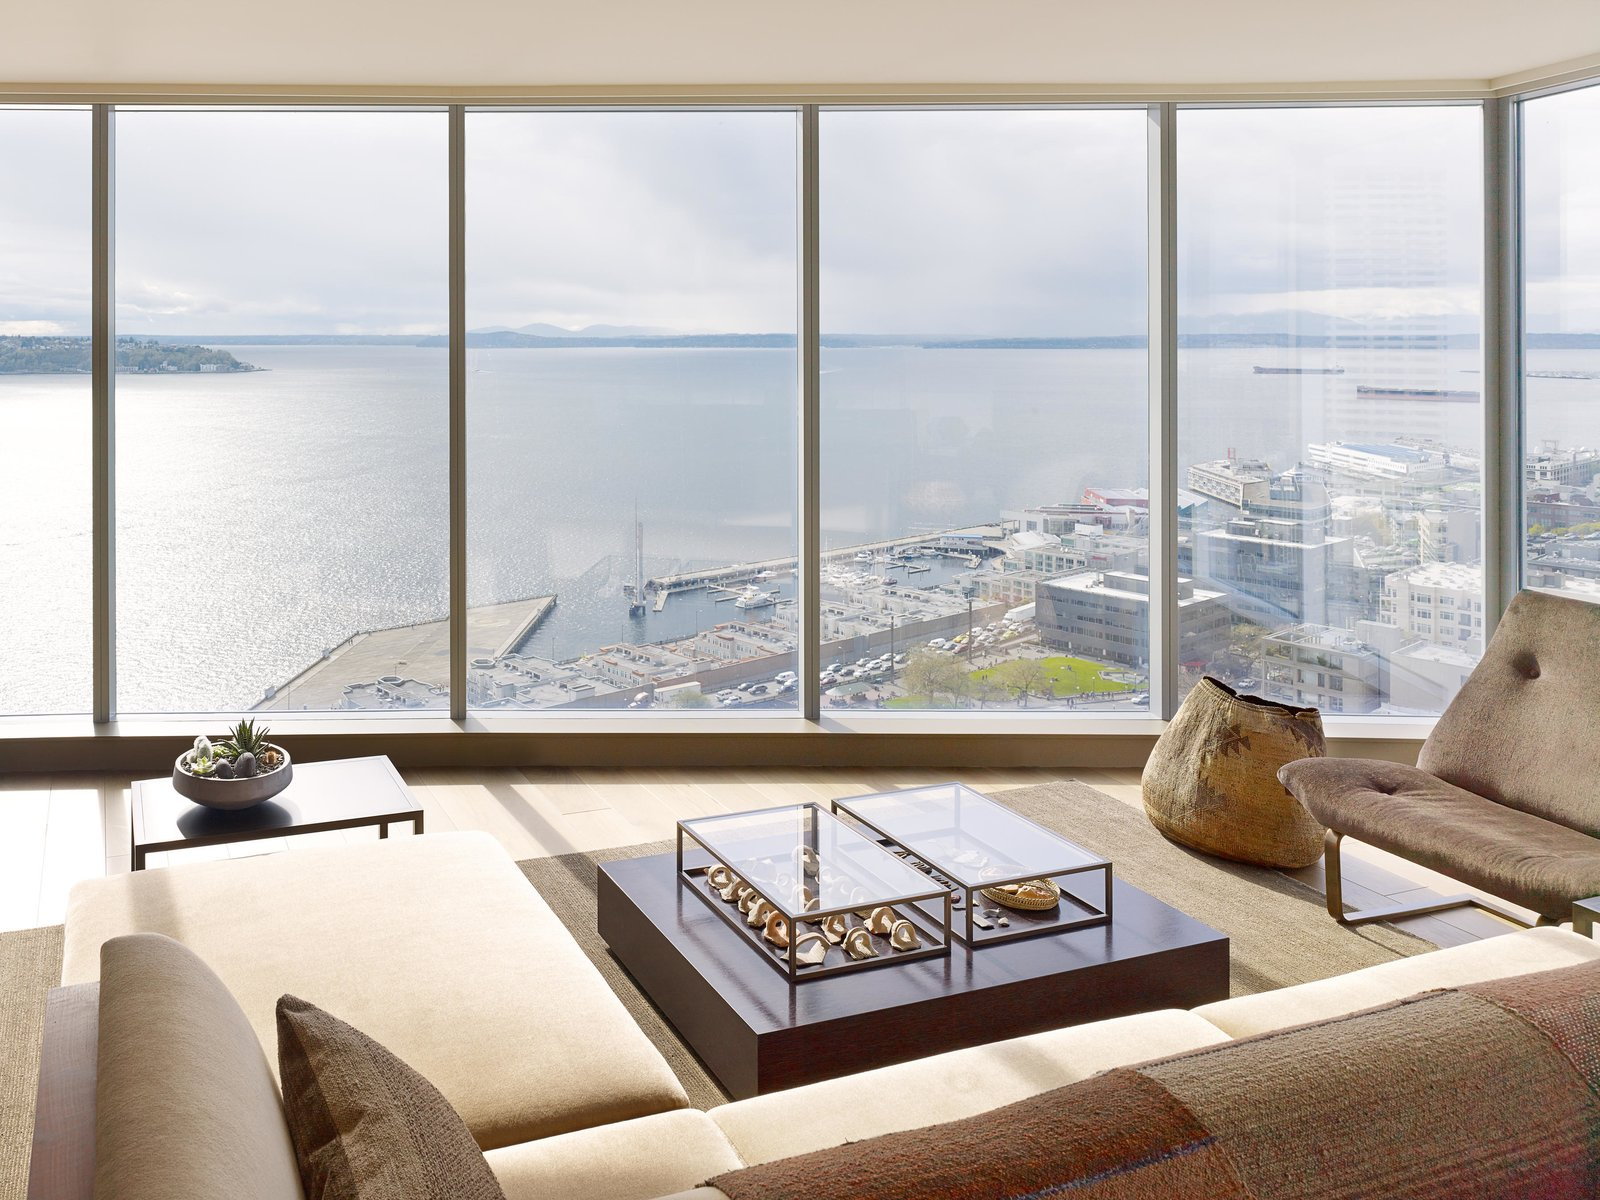 Living Room, Sectional, Sofa, End Tables, Light Hardwood Floor, and Rug Floor Haven of Reflection | Olson Kundig  Haven of Reflection by Olson Kundig